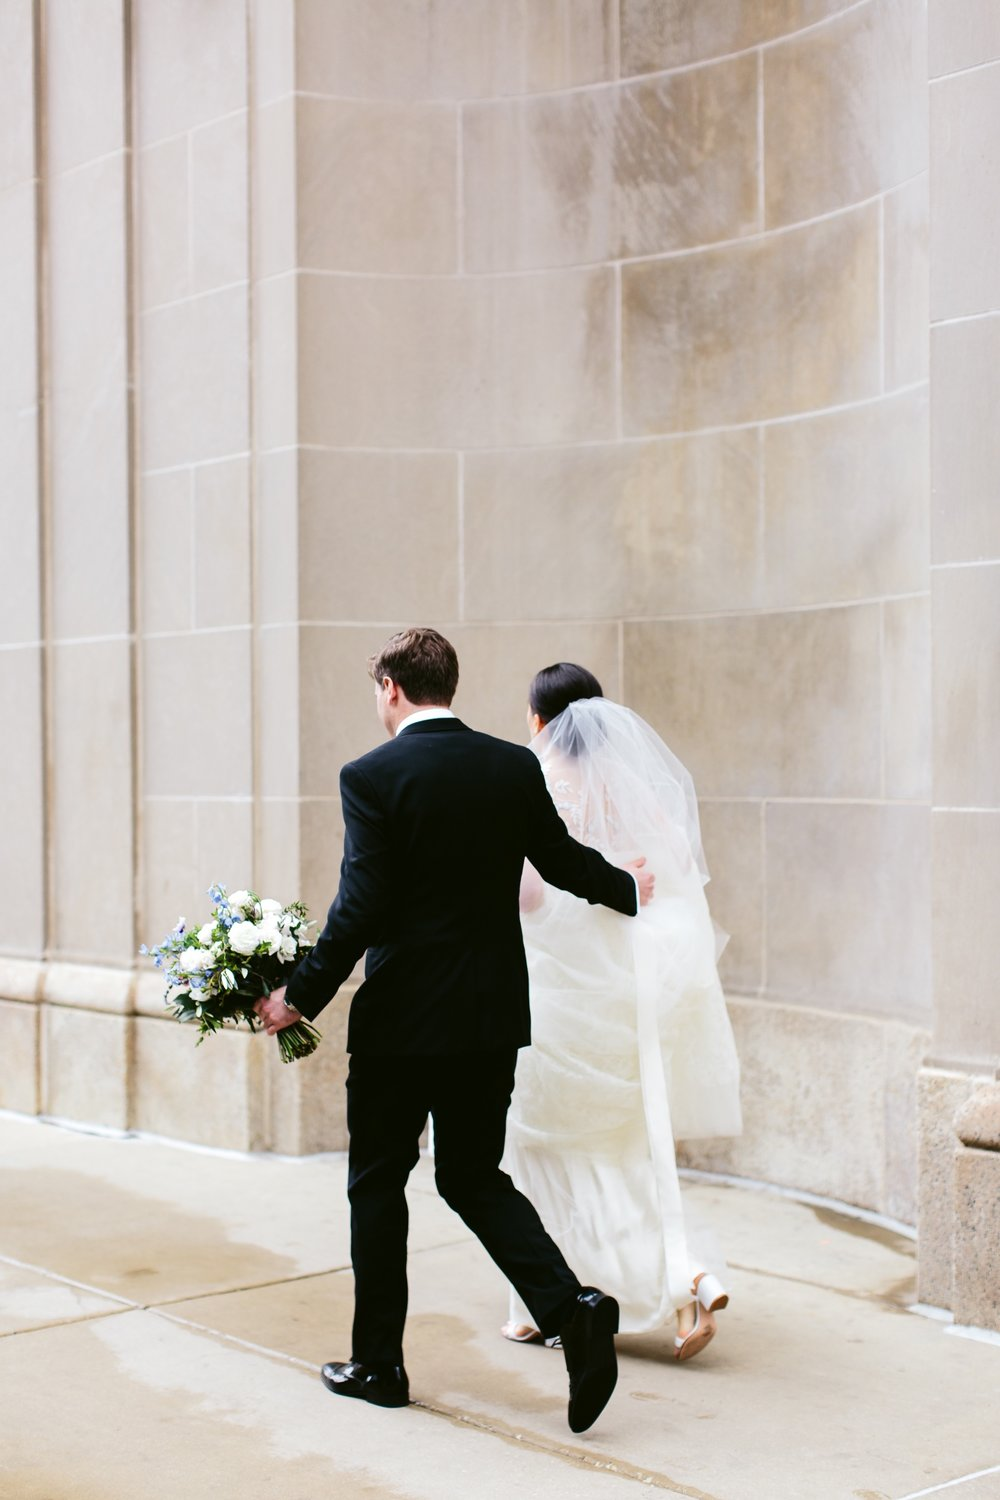 nicodem-creative-wedding-photography-chicago-inspiration-cafe-brauer-ritz-north-shore-events-stems-jesse-sophia